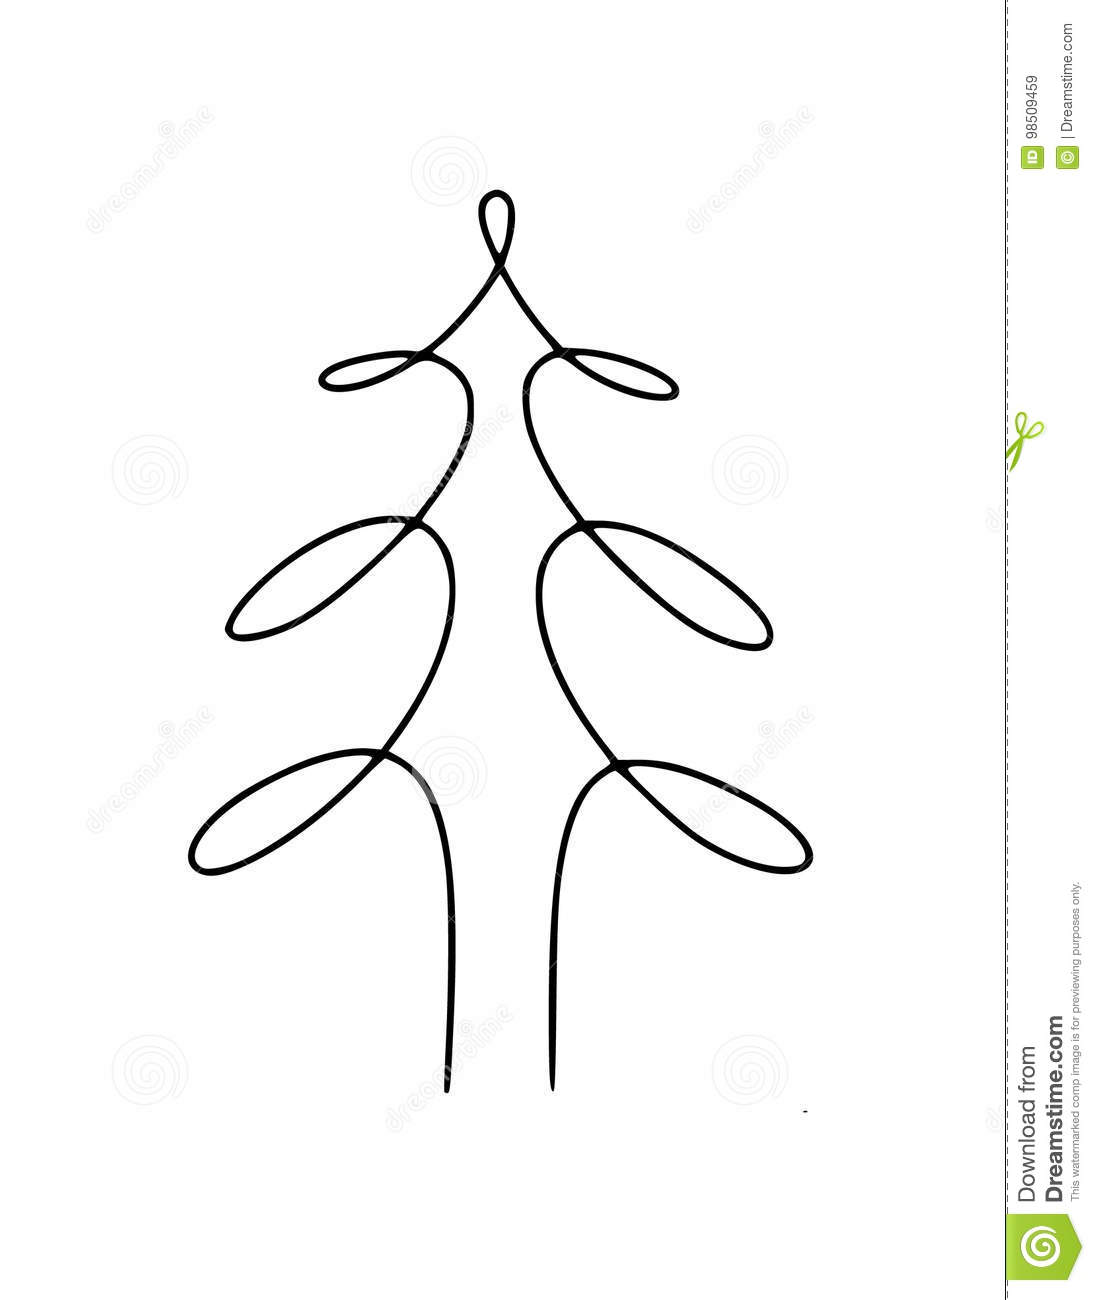 Tree Hand Drawn Line Stock Vector Illustration Of Draw 98509459